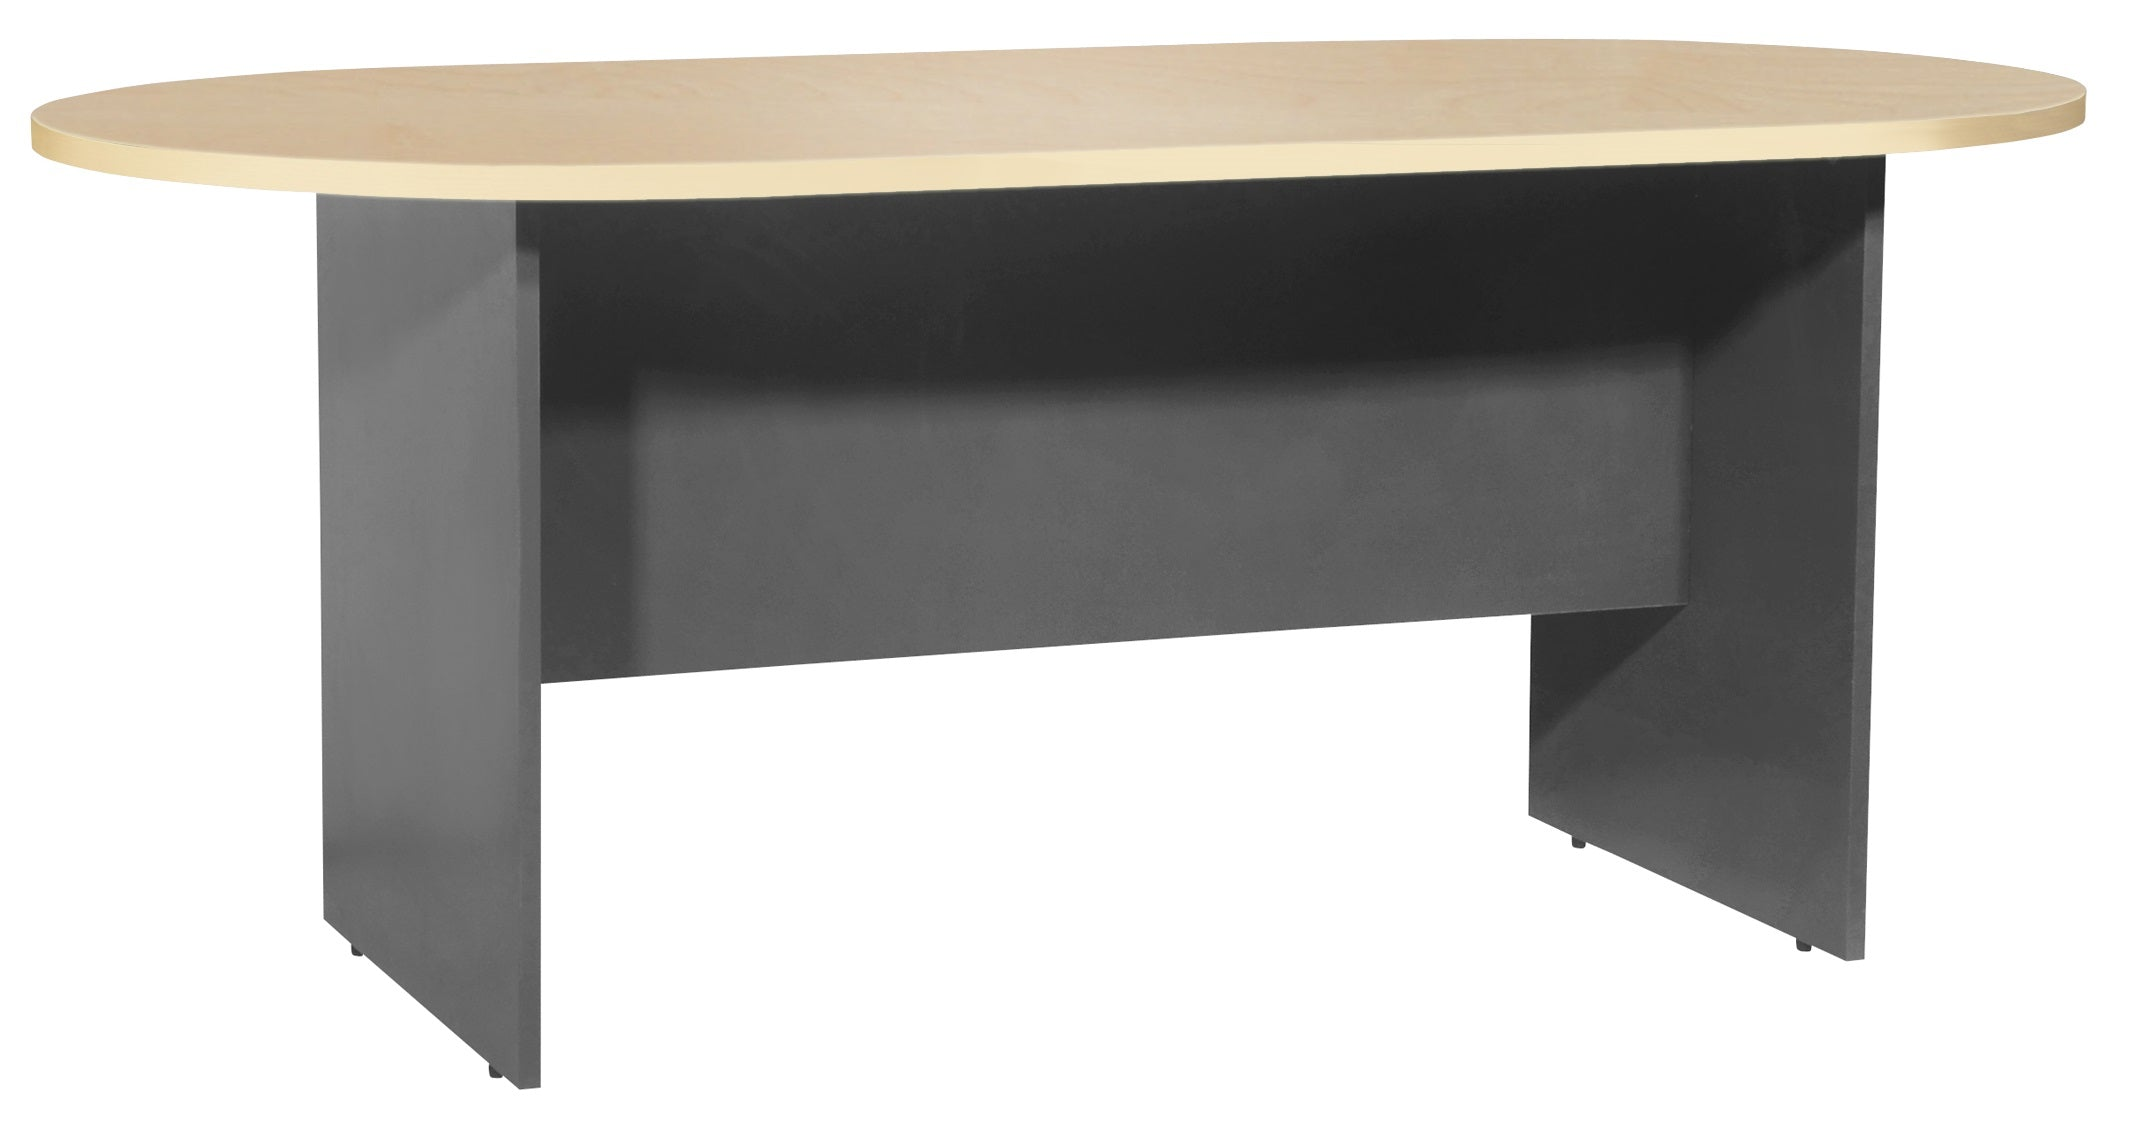 steel cool rectangle and table wooden wood concrete with brown room remarkable trends tables longe on furniture conference grey